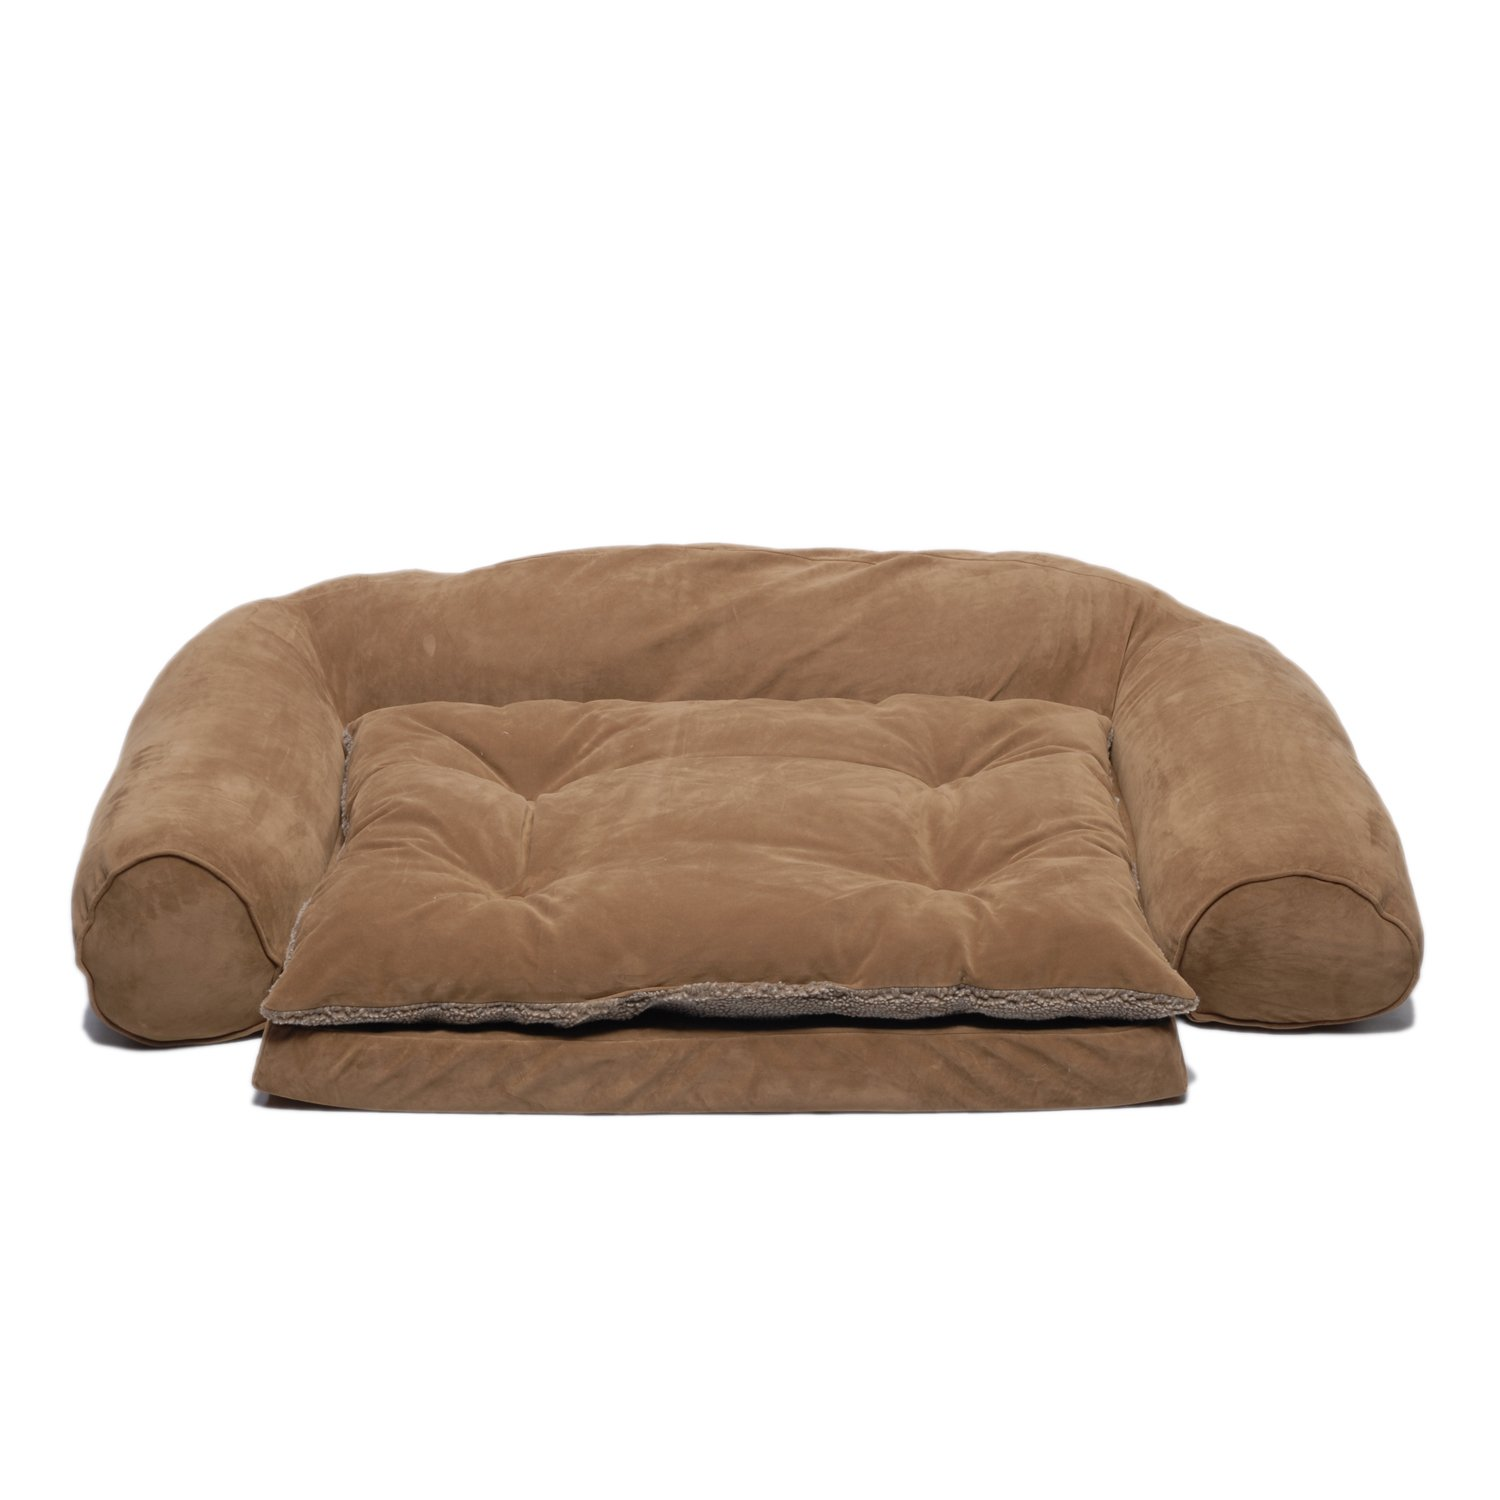 CPC Ortho Sleeper Ex Large Comfort Couch with Removable Cushion, Chocolate